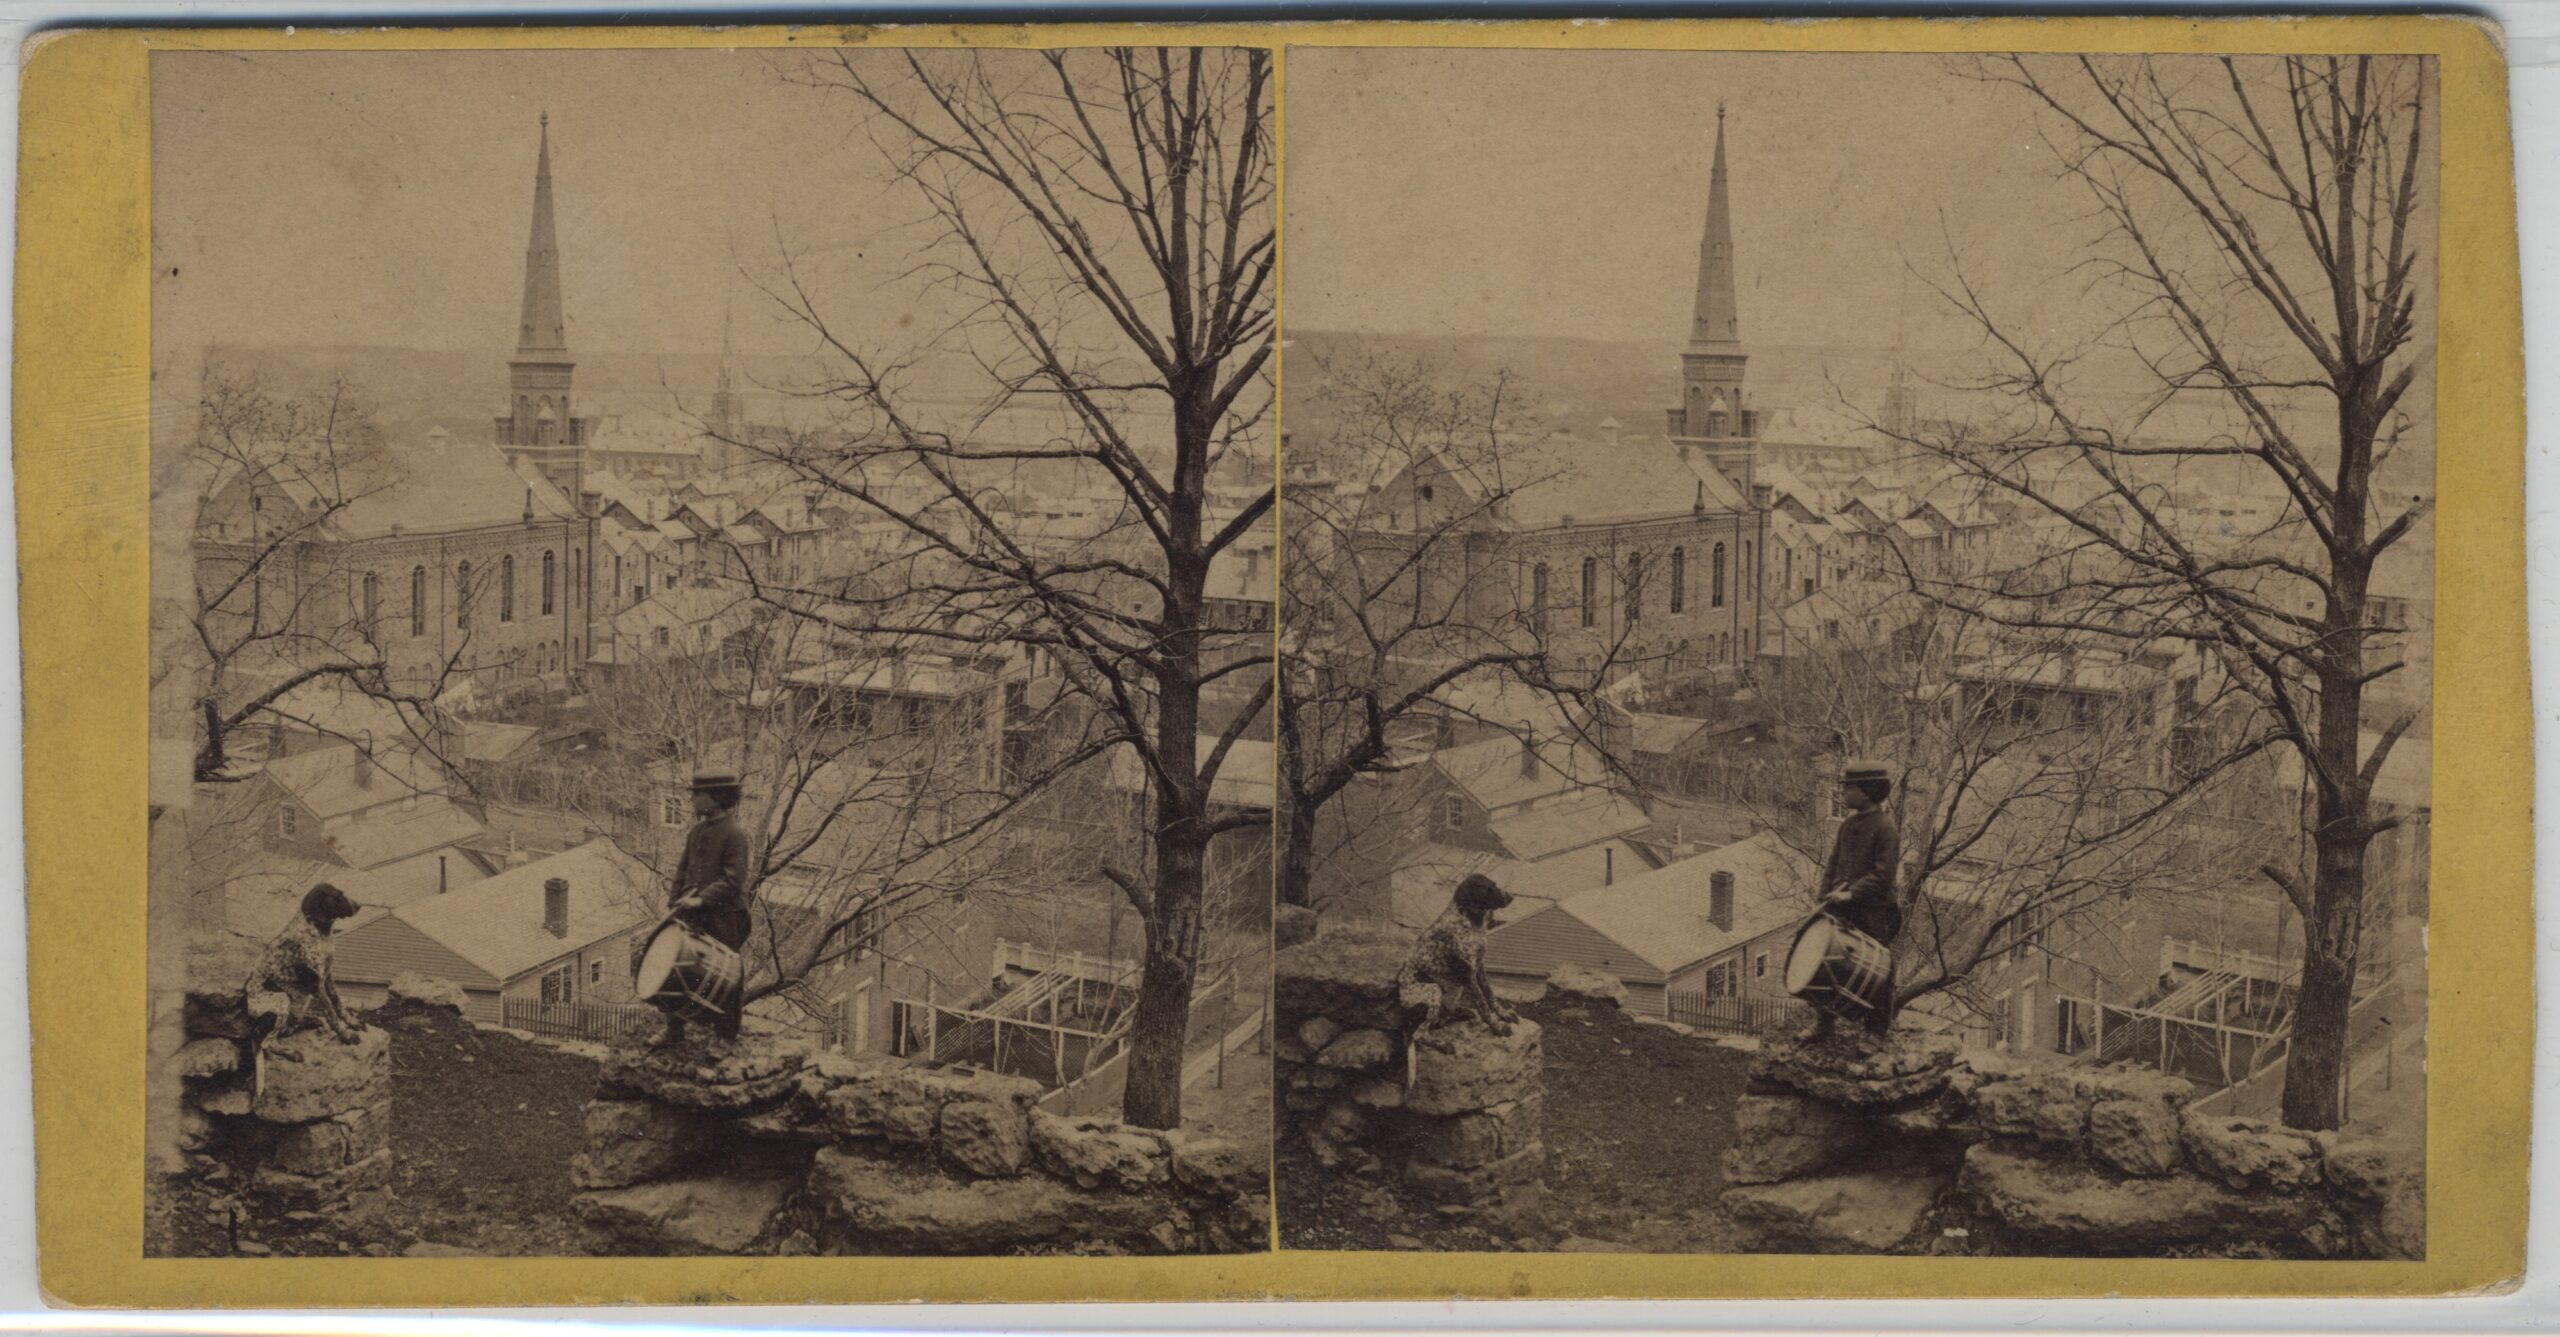 LJTP 100.300 - S. Root - Grove Terrace looking at Westminster Presbyterian Church - c1880